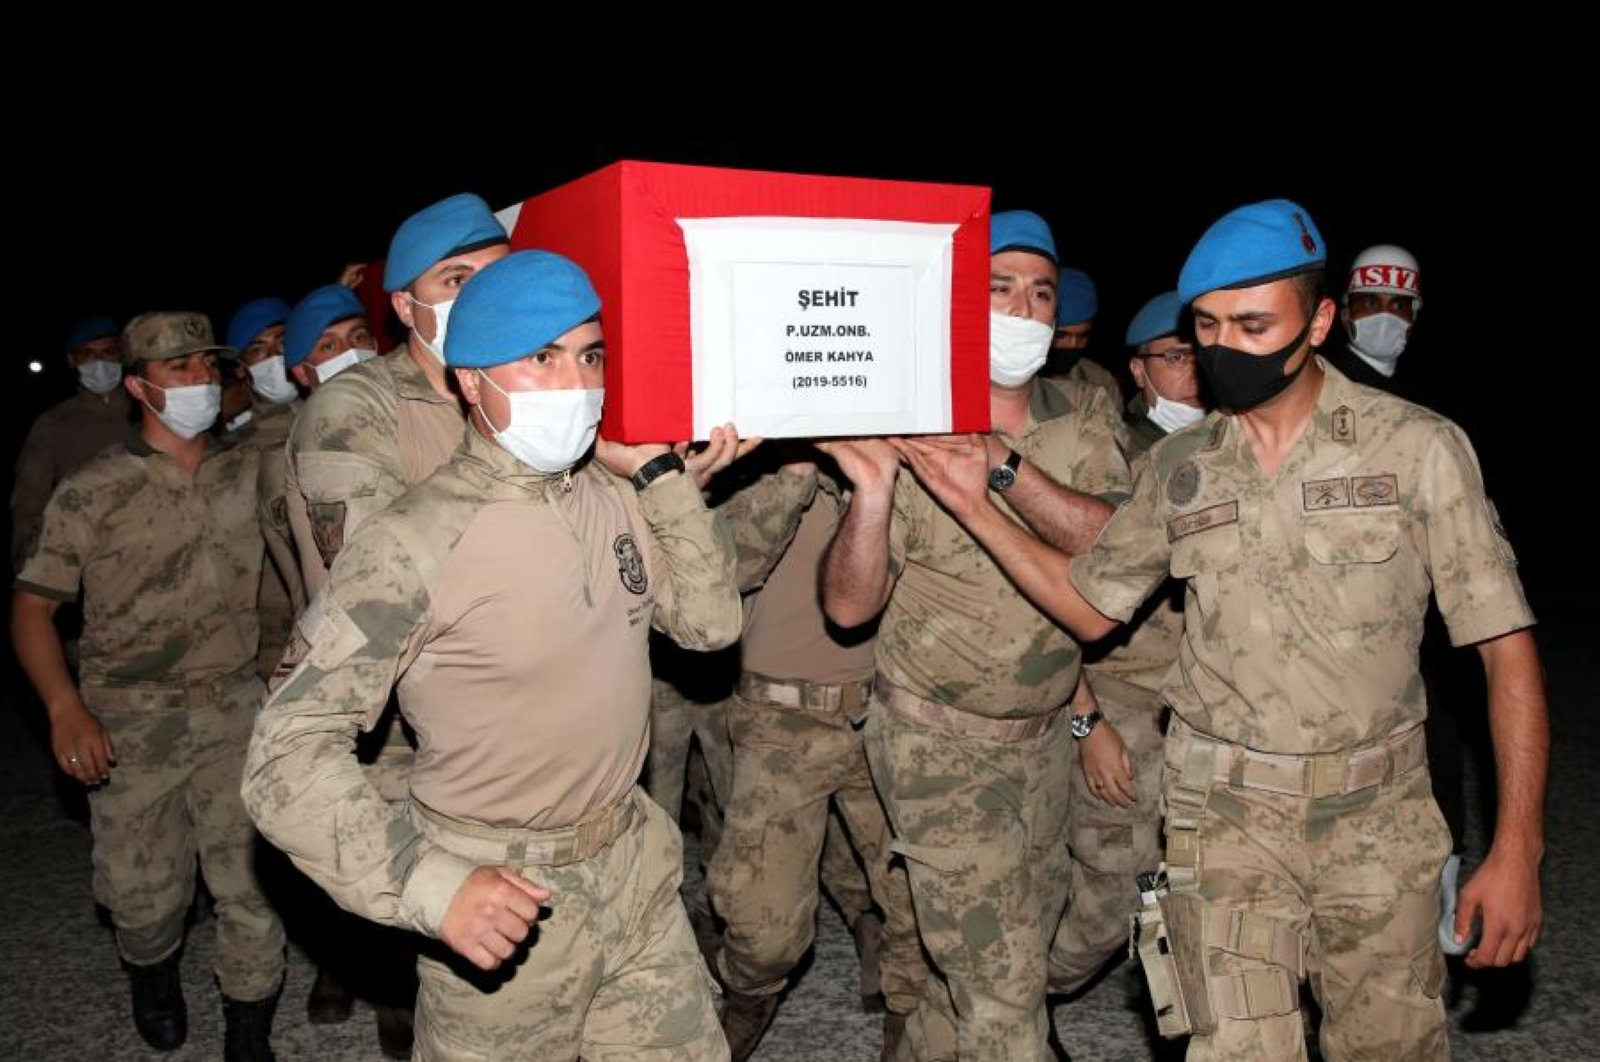 Soldiers carry the coffin of Ömer Kahya, a corporal killed in counterterrorism operations in Iraq, during a funeral ceremony in Şırnak, Turkey, June 19, 2020. (COURTESY OF MINISTRY OF NATIONAL DEFENSE)